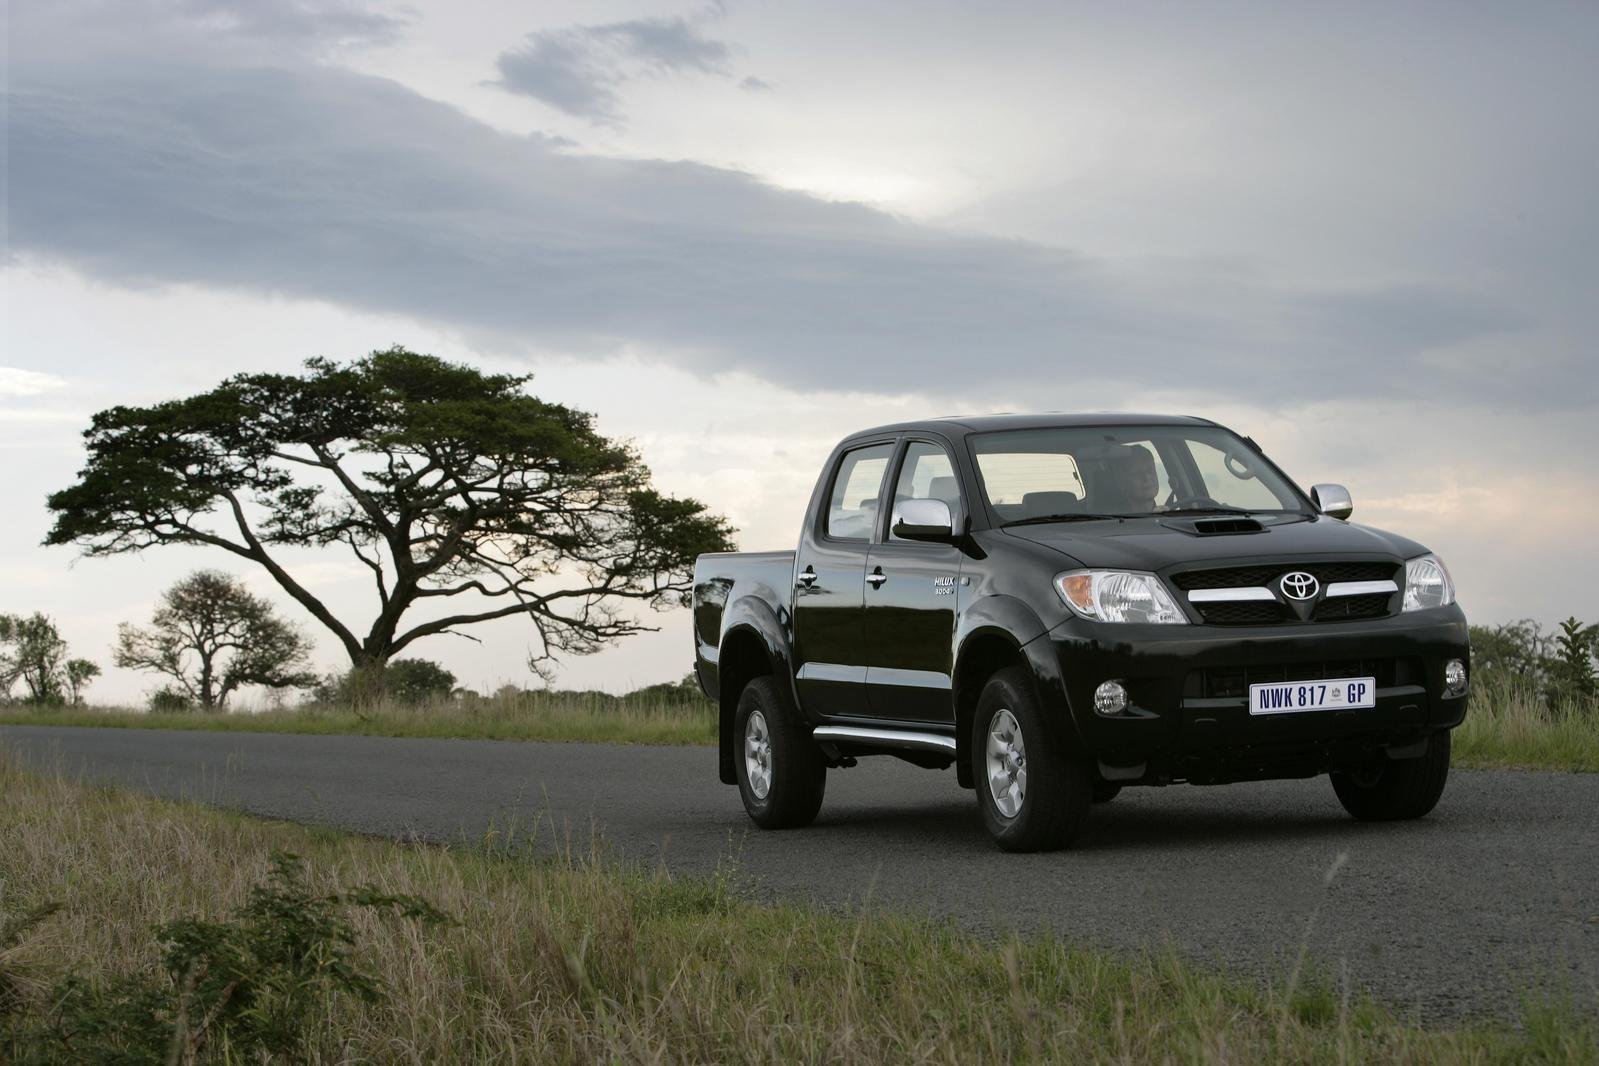 2007 toyota hilux picture 158011 car review top speed. Black Bedroom Furniture Sets. Home Design Ideas